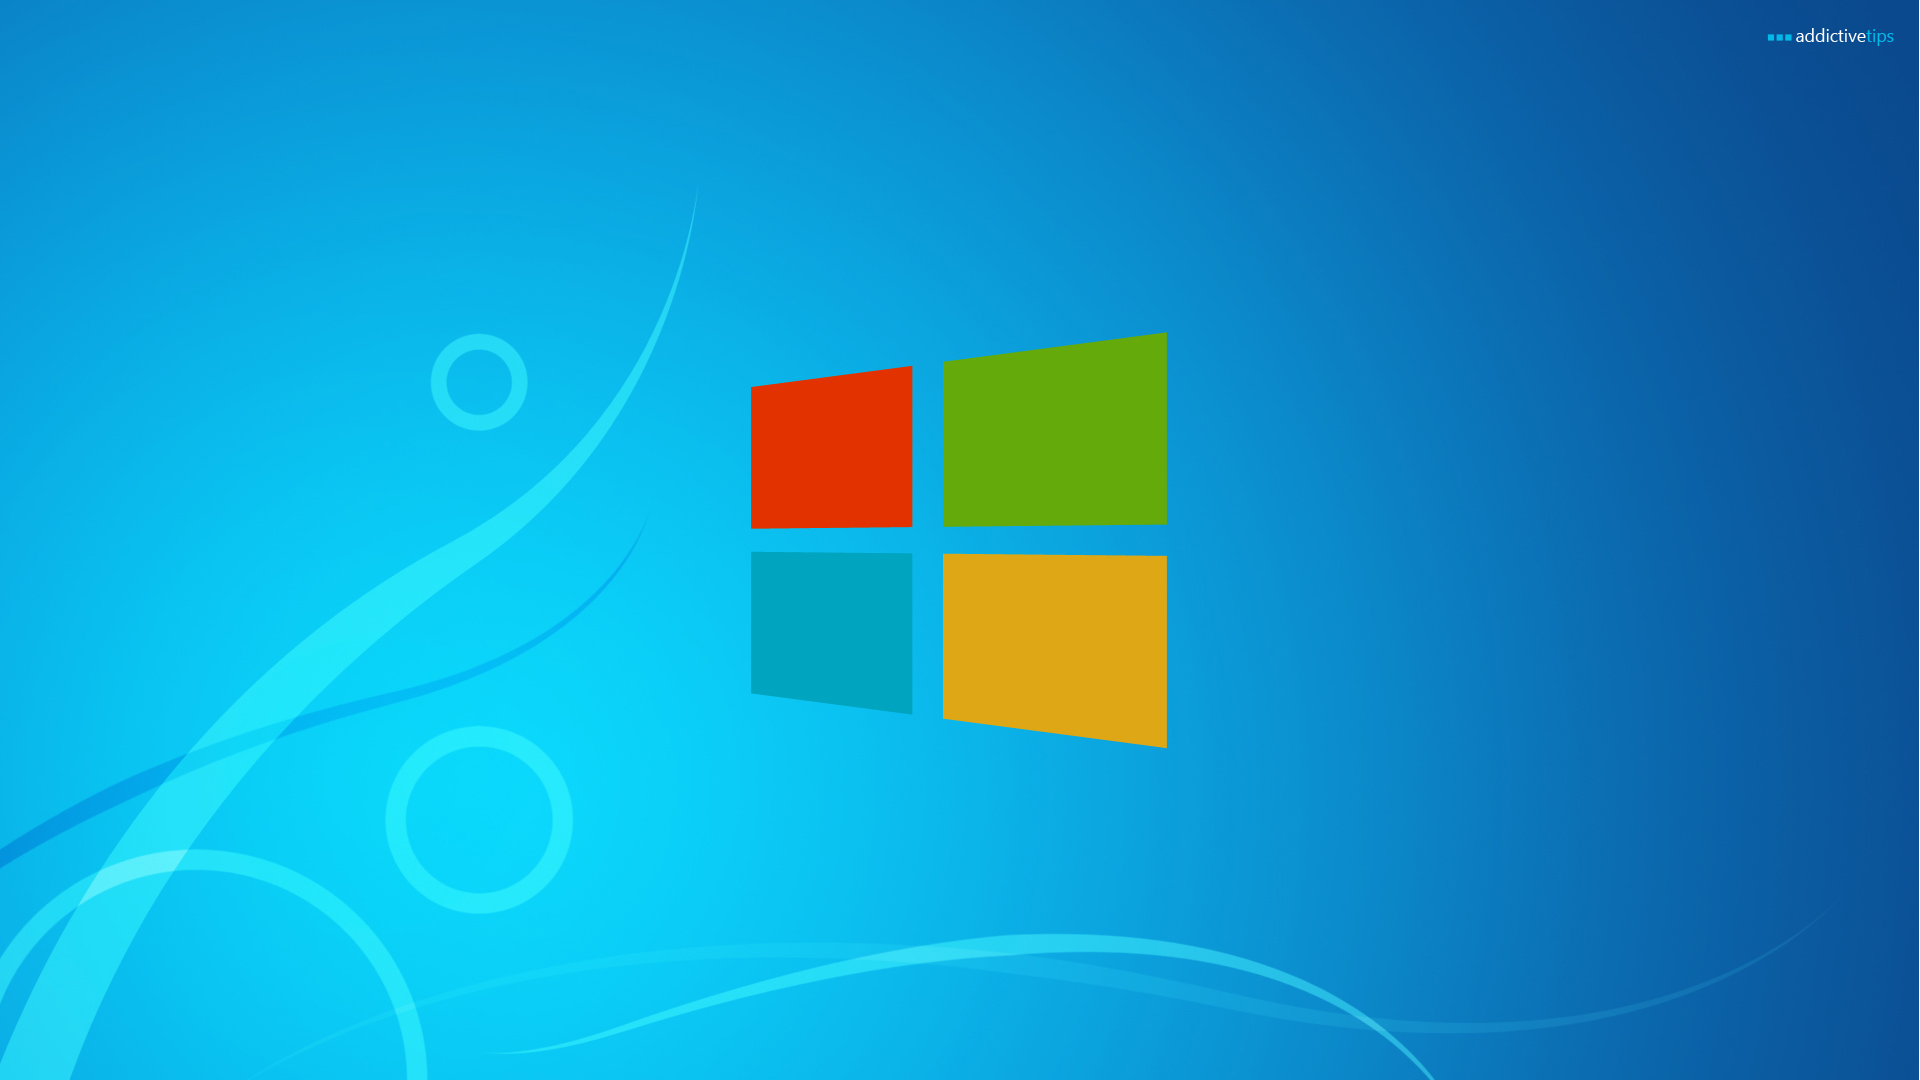 Windows-8-Wallpaper-Windows-7-Spinoff-White-2_1.jpg